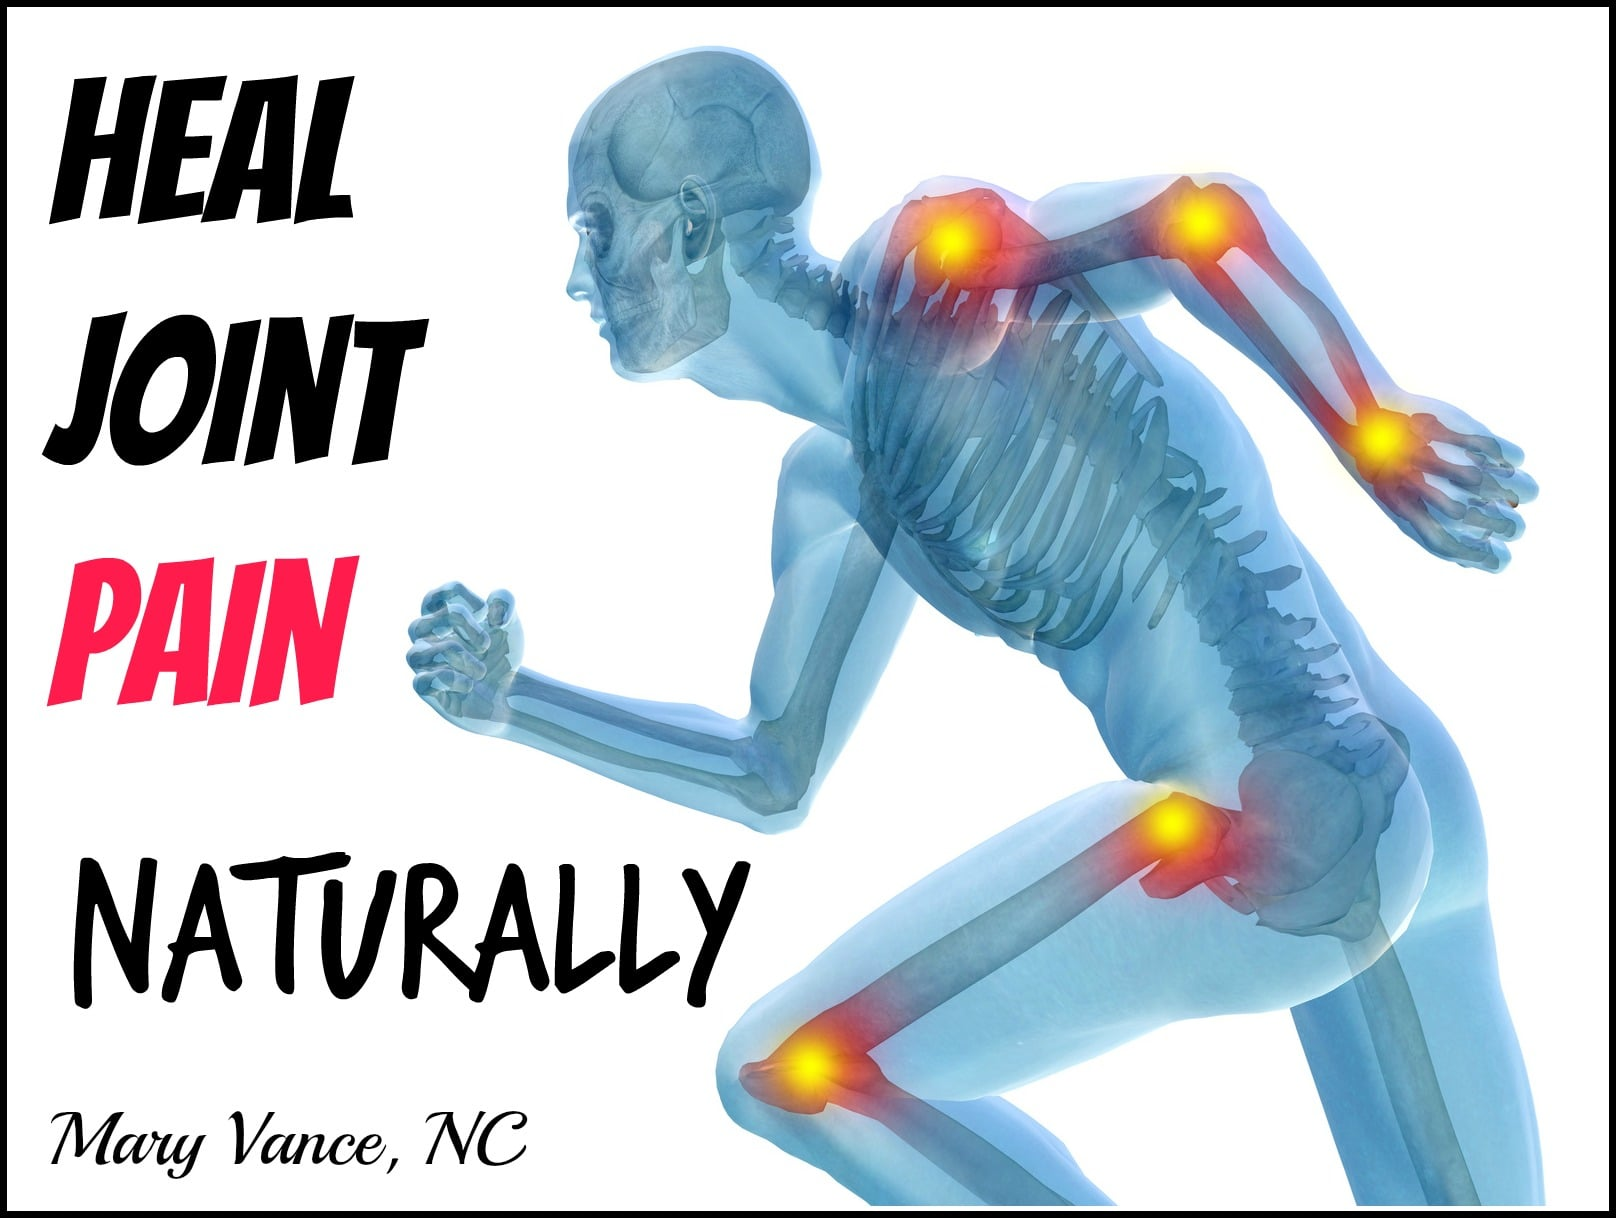 How to heal joint pain naturally mary vance nc heal joint pain naturally mary vance nc solutioingenieria Choice Image